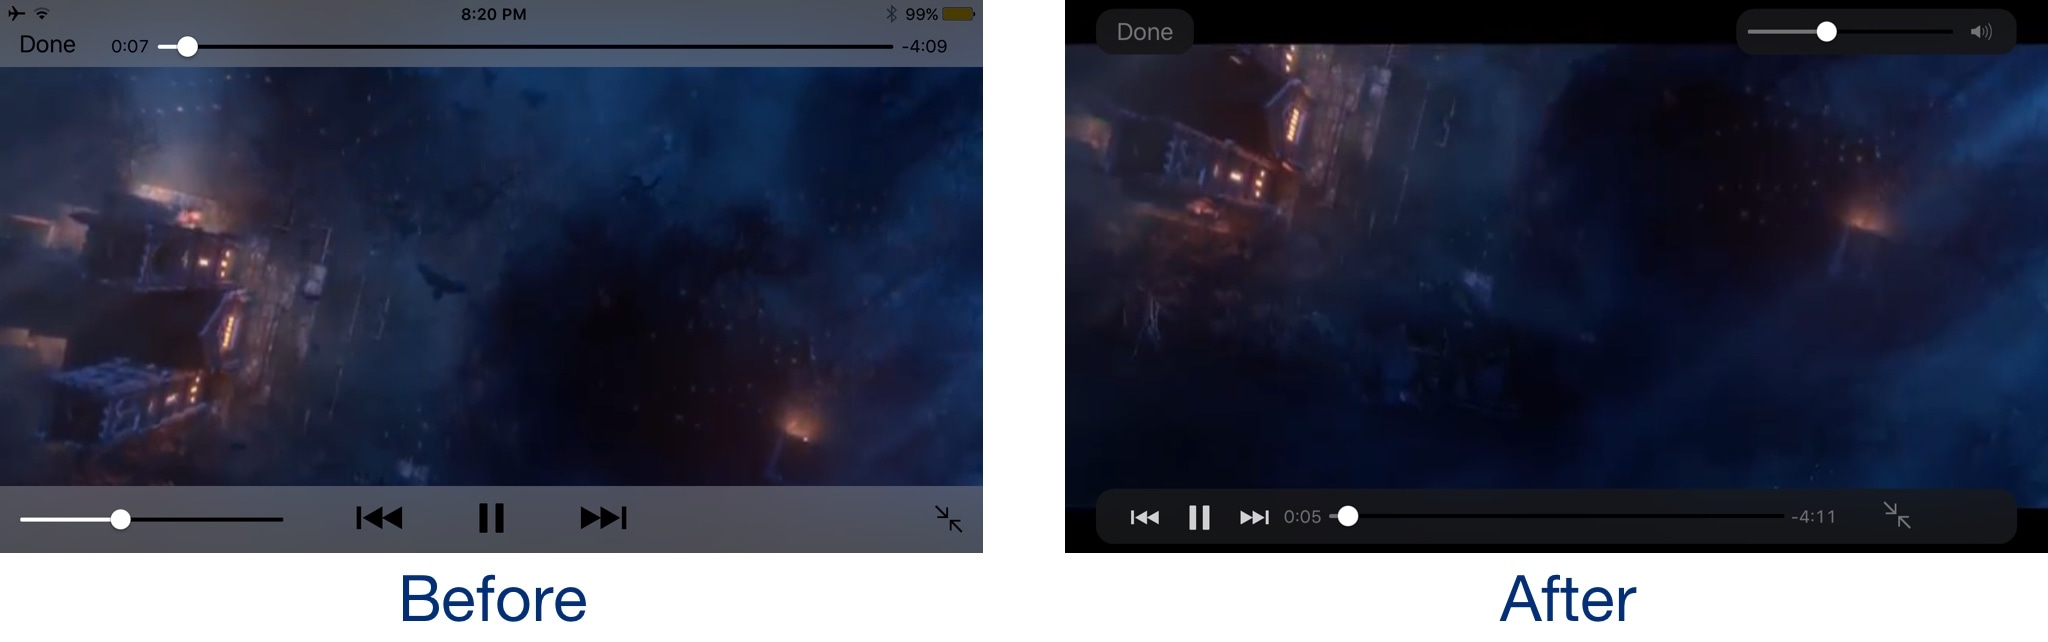 VideoPlayerXI brings an iOS 11-inspired video player to ...